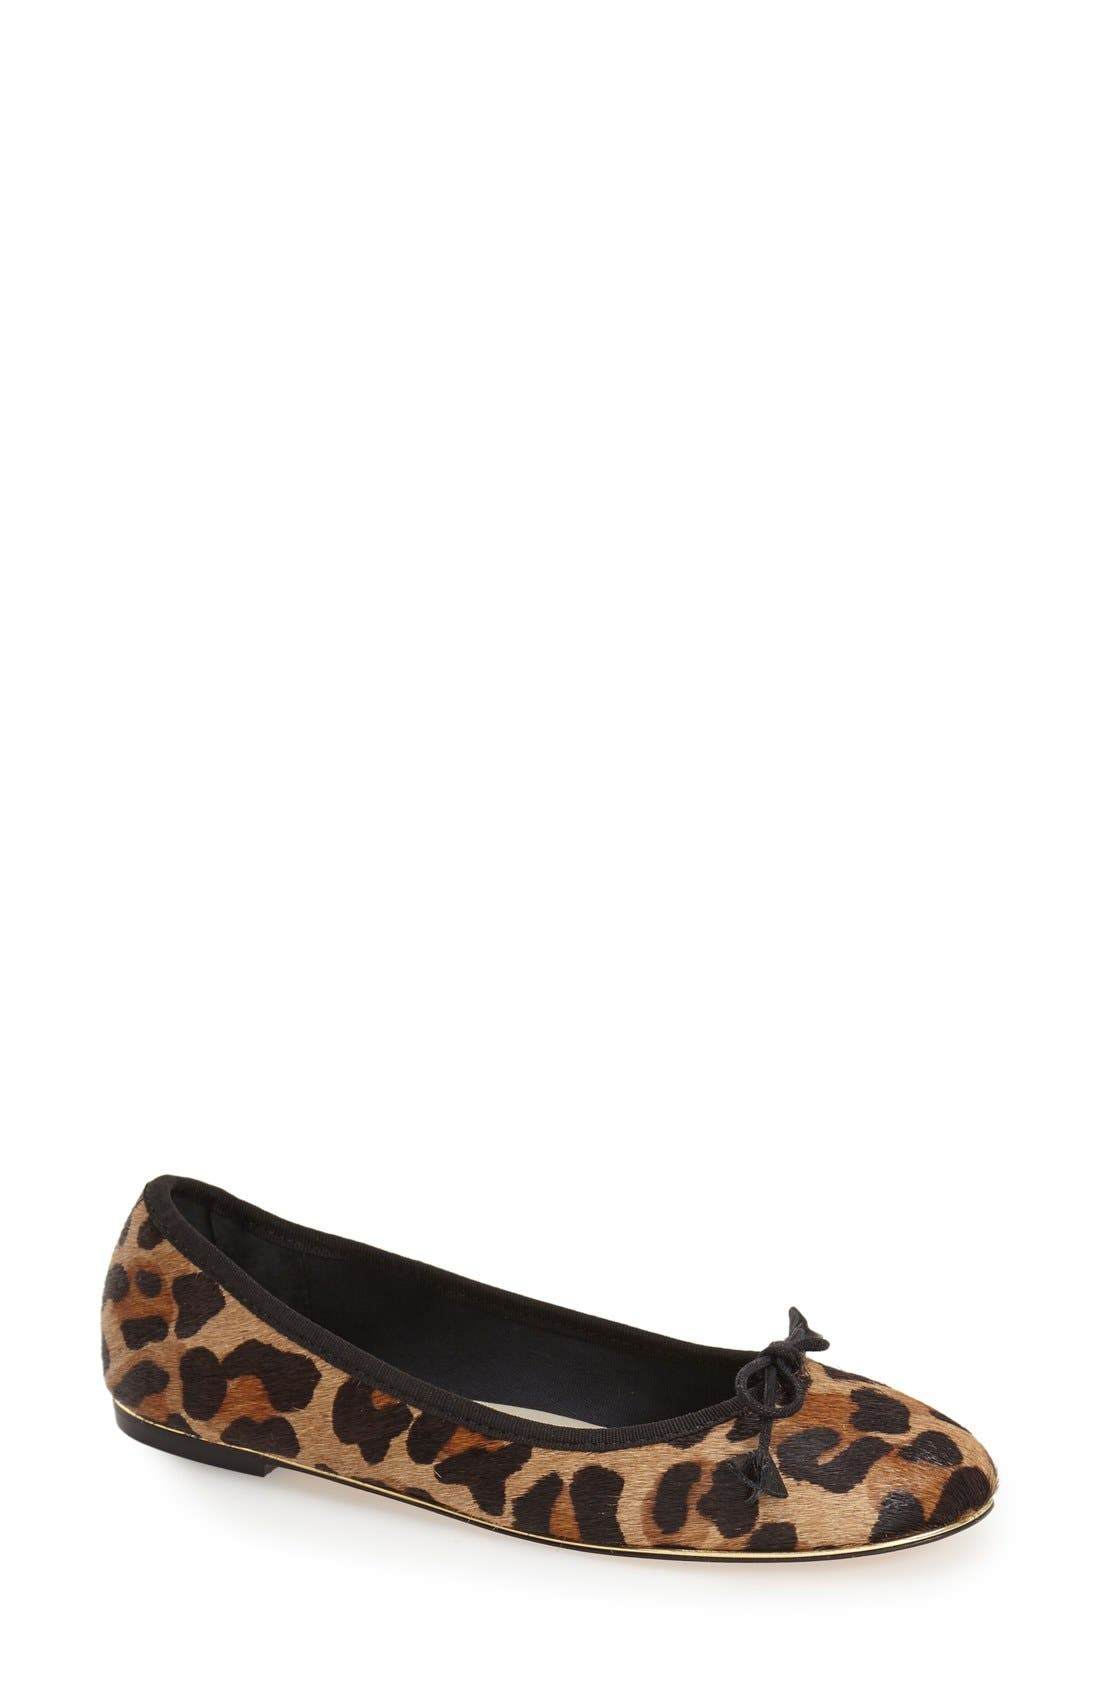 Alternate Image 1 Selected - French Sole 'Pagan' Ballet Flat (Women)